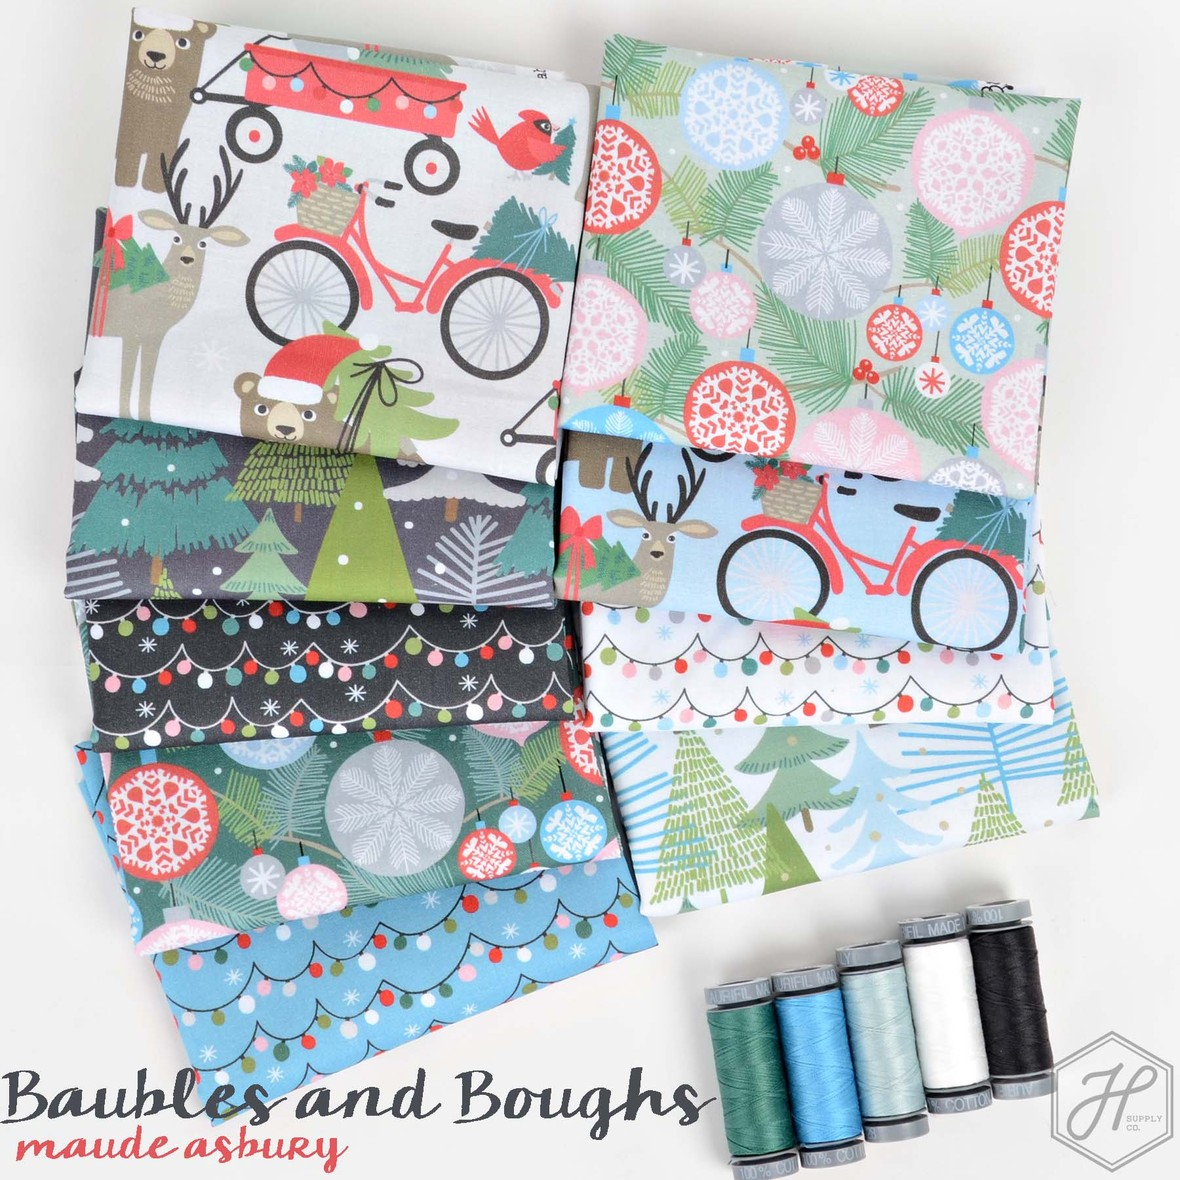 Baubles and Boughs Christmas Fabric Maude Asbury for Blend at Hawthorne Supply Co